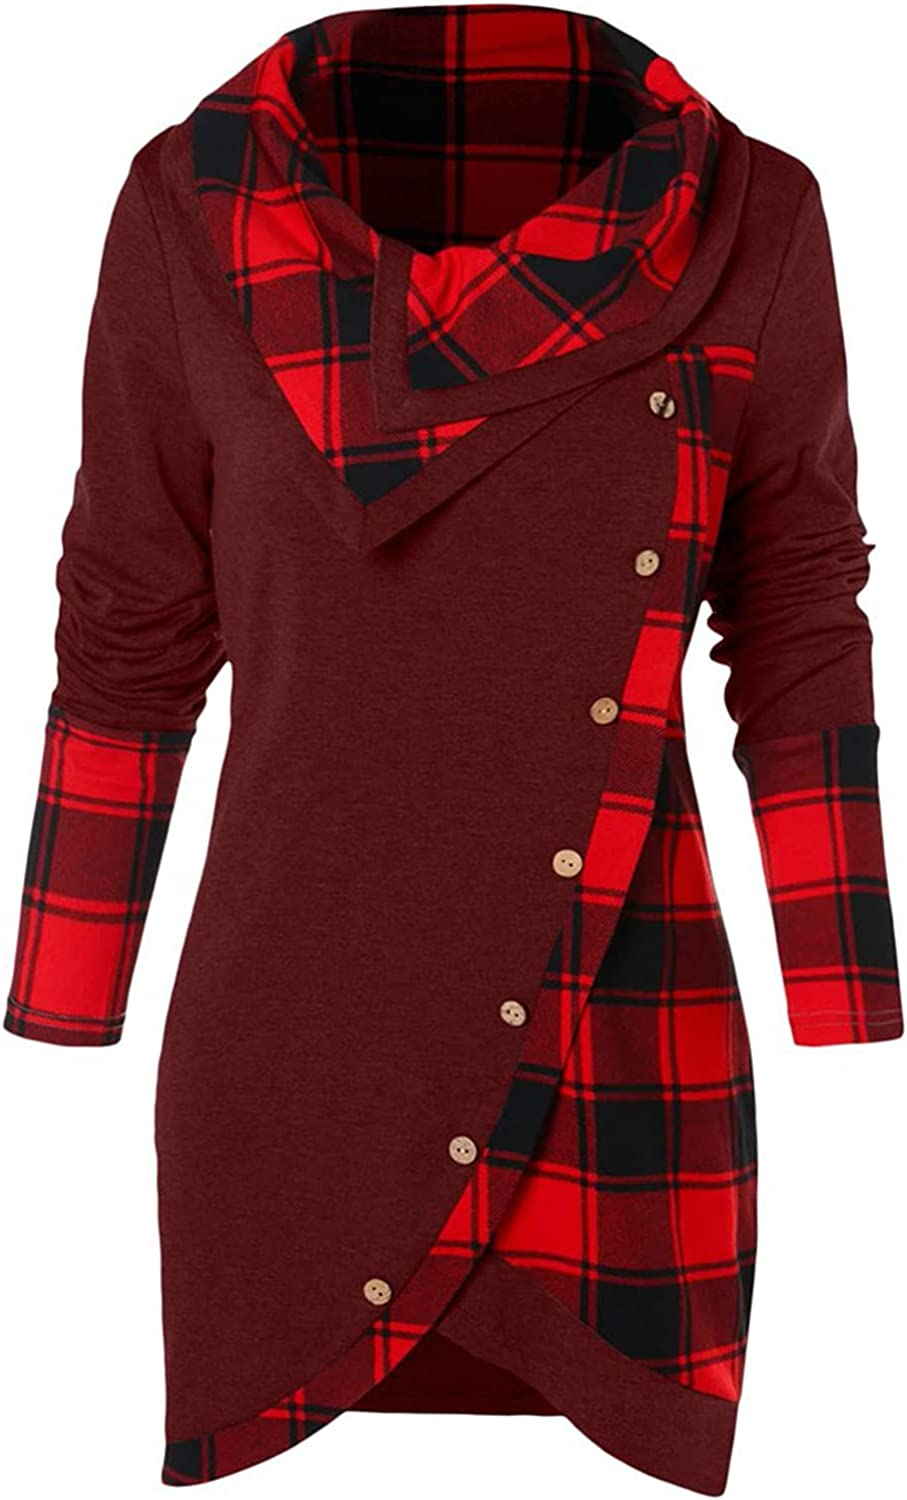 Sweatshirts for Women, Ladies Plaid Patchwork Long Sleeve Sweatshirt Bow-Neck Pullover Tops Blouses Buttons Shirts